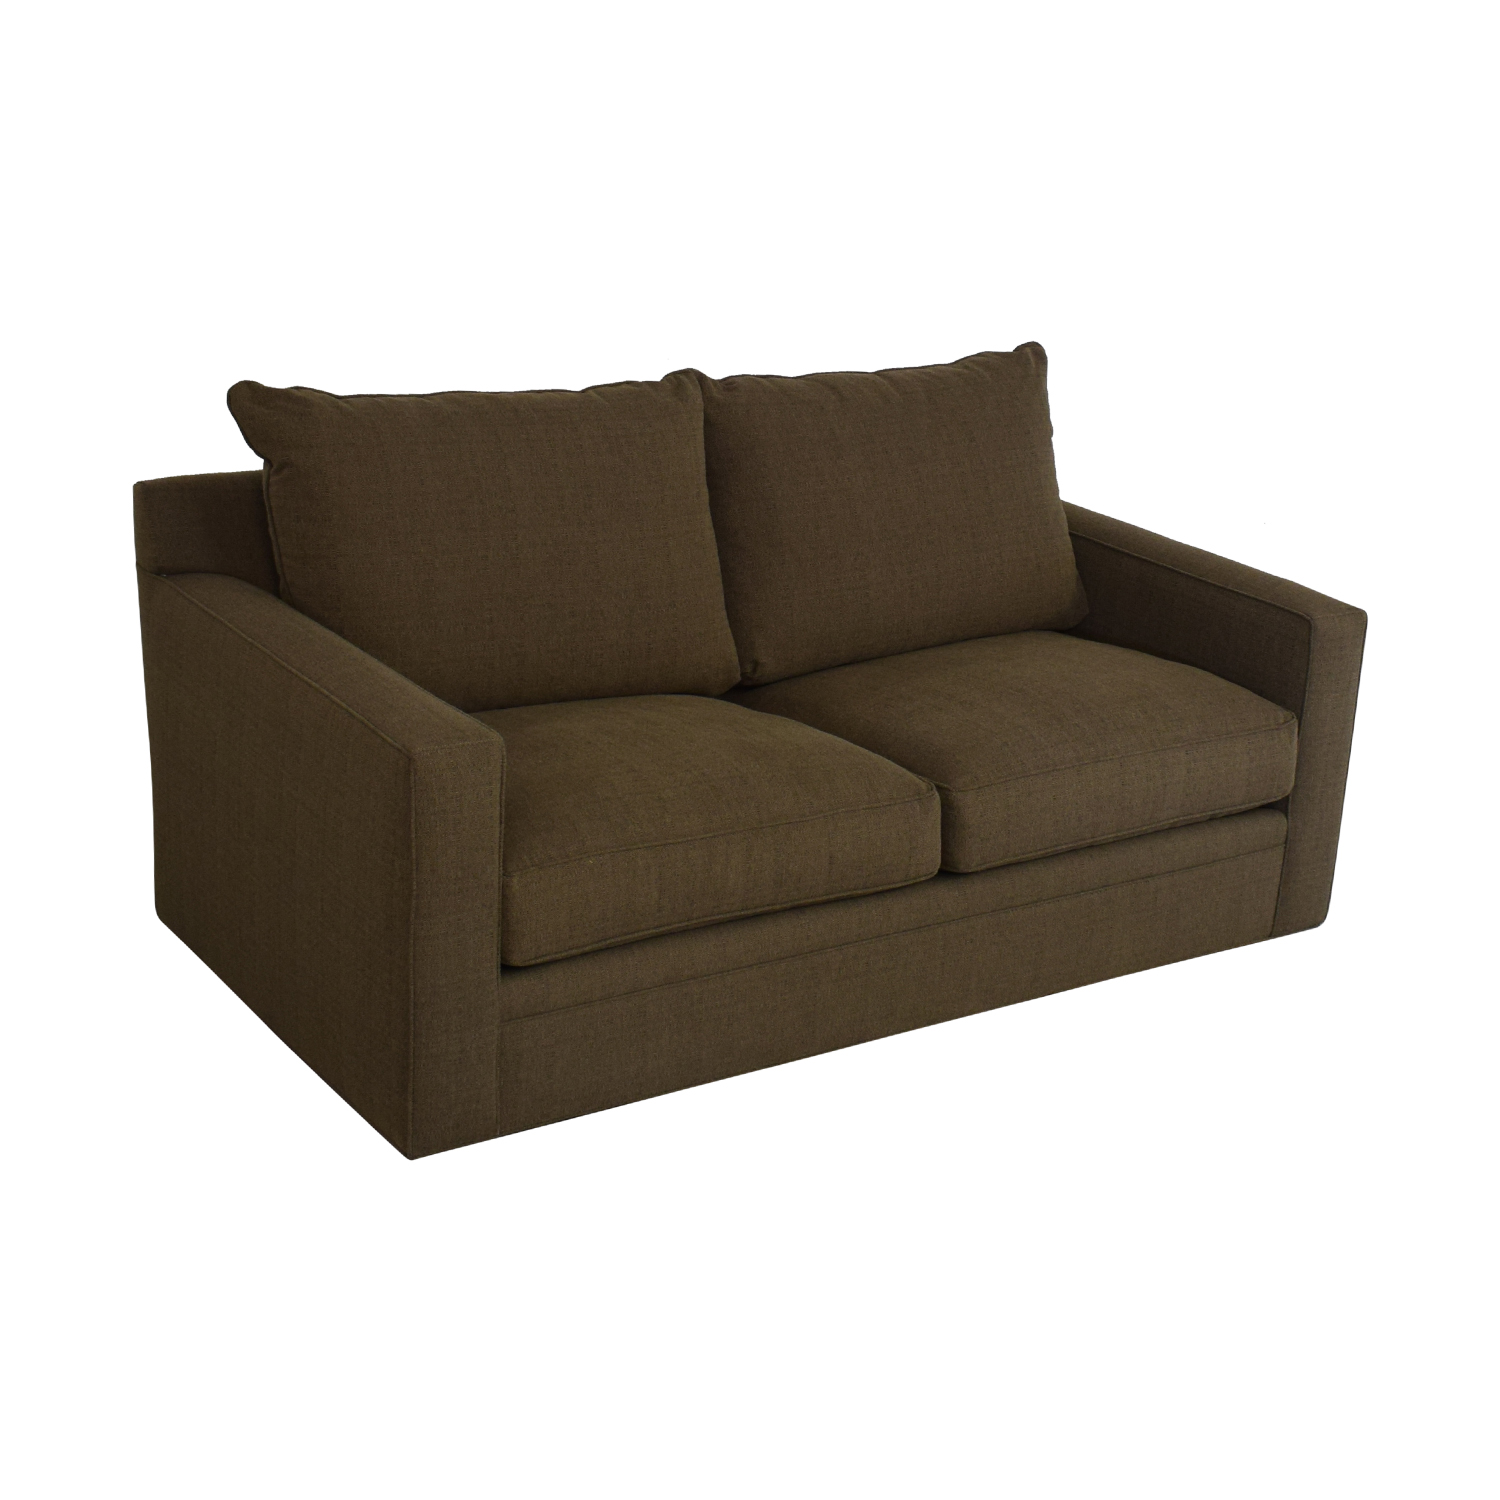 Room & Board Room & Board Orson Guest Select Sleeper Sofa for sale